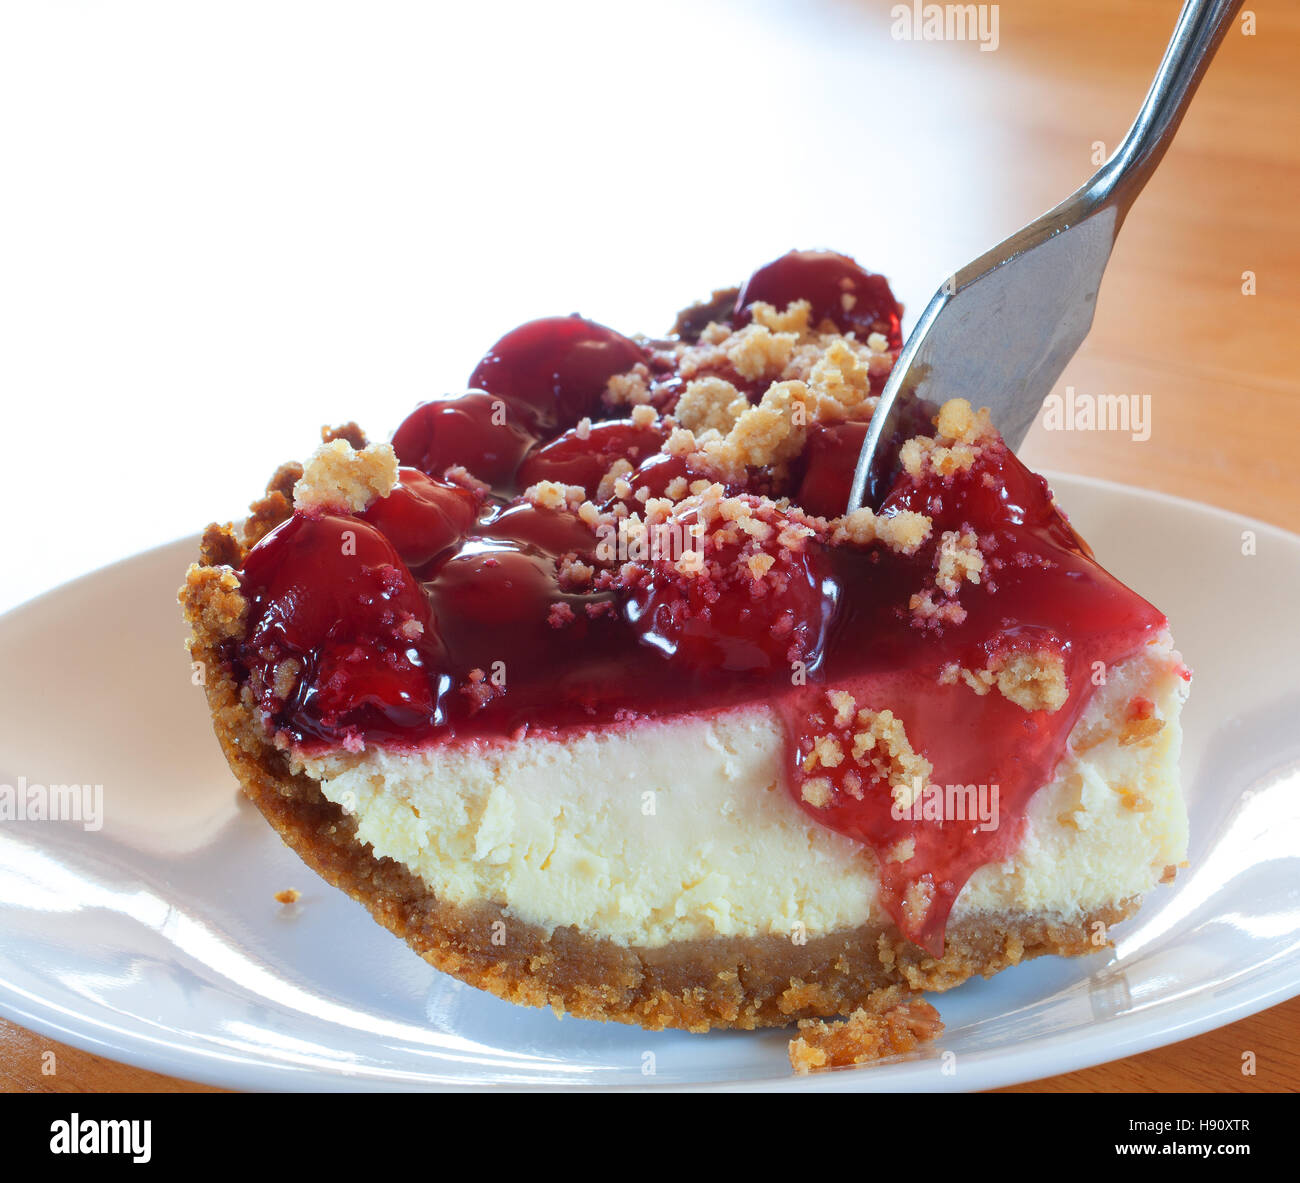 Fork going into a piece of cheesecake topped with cherries - Stock Image